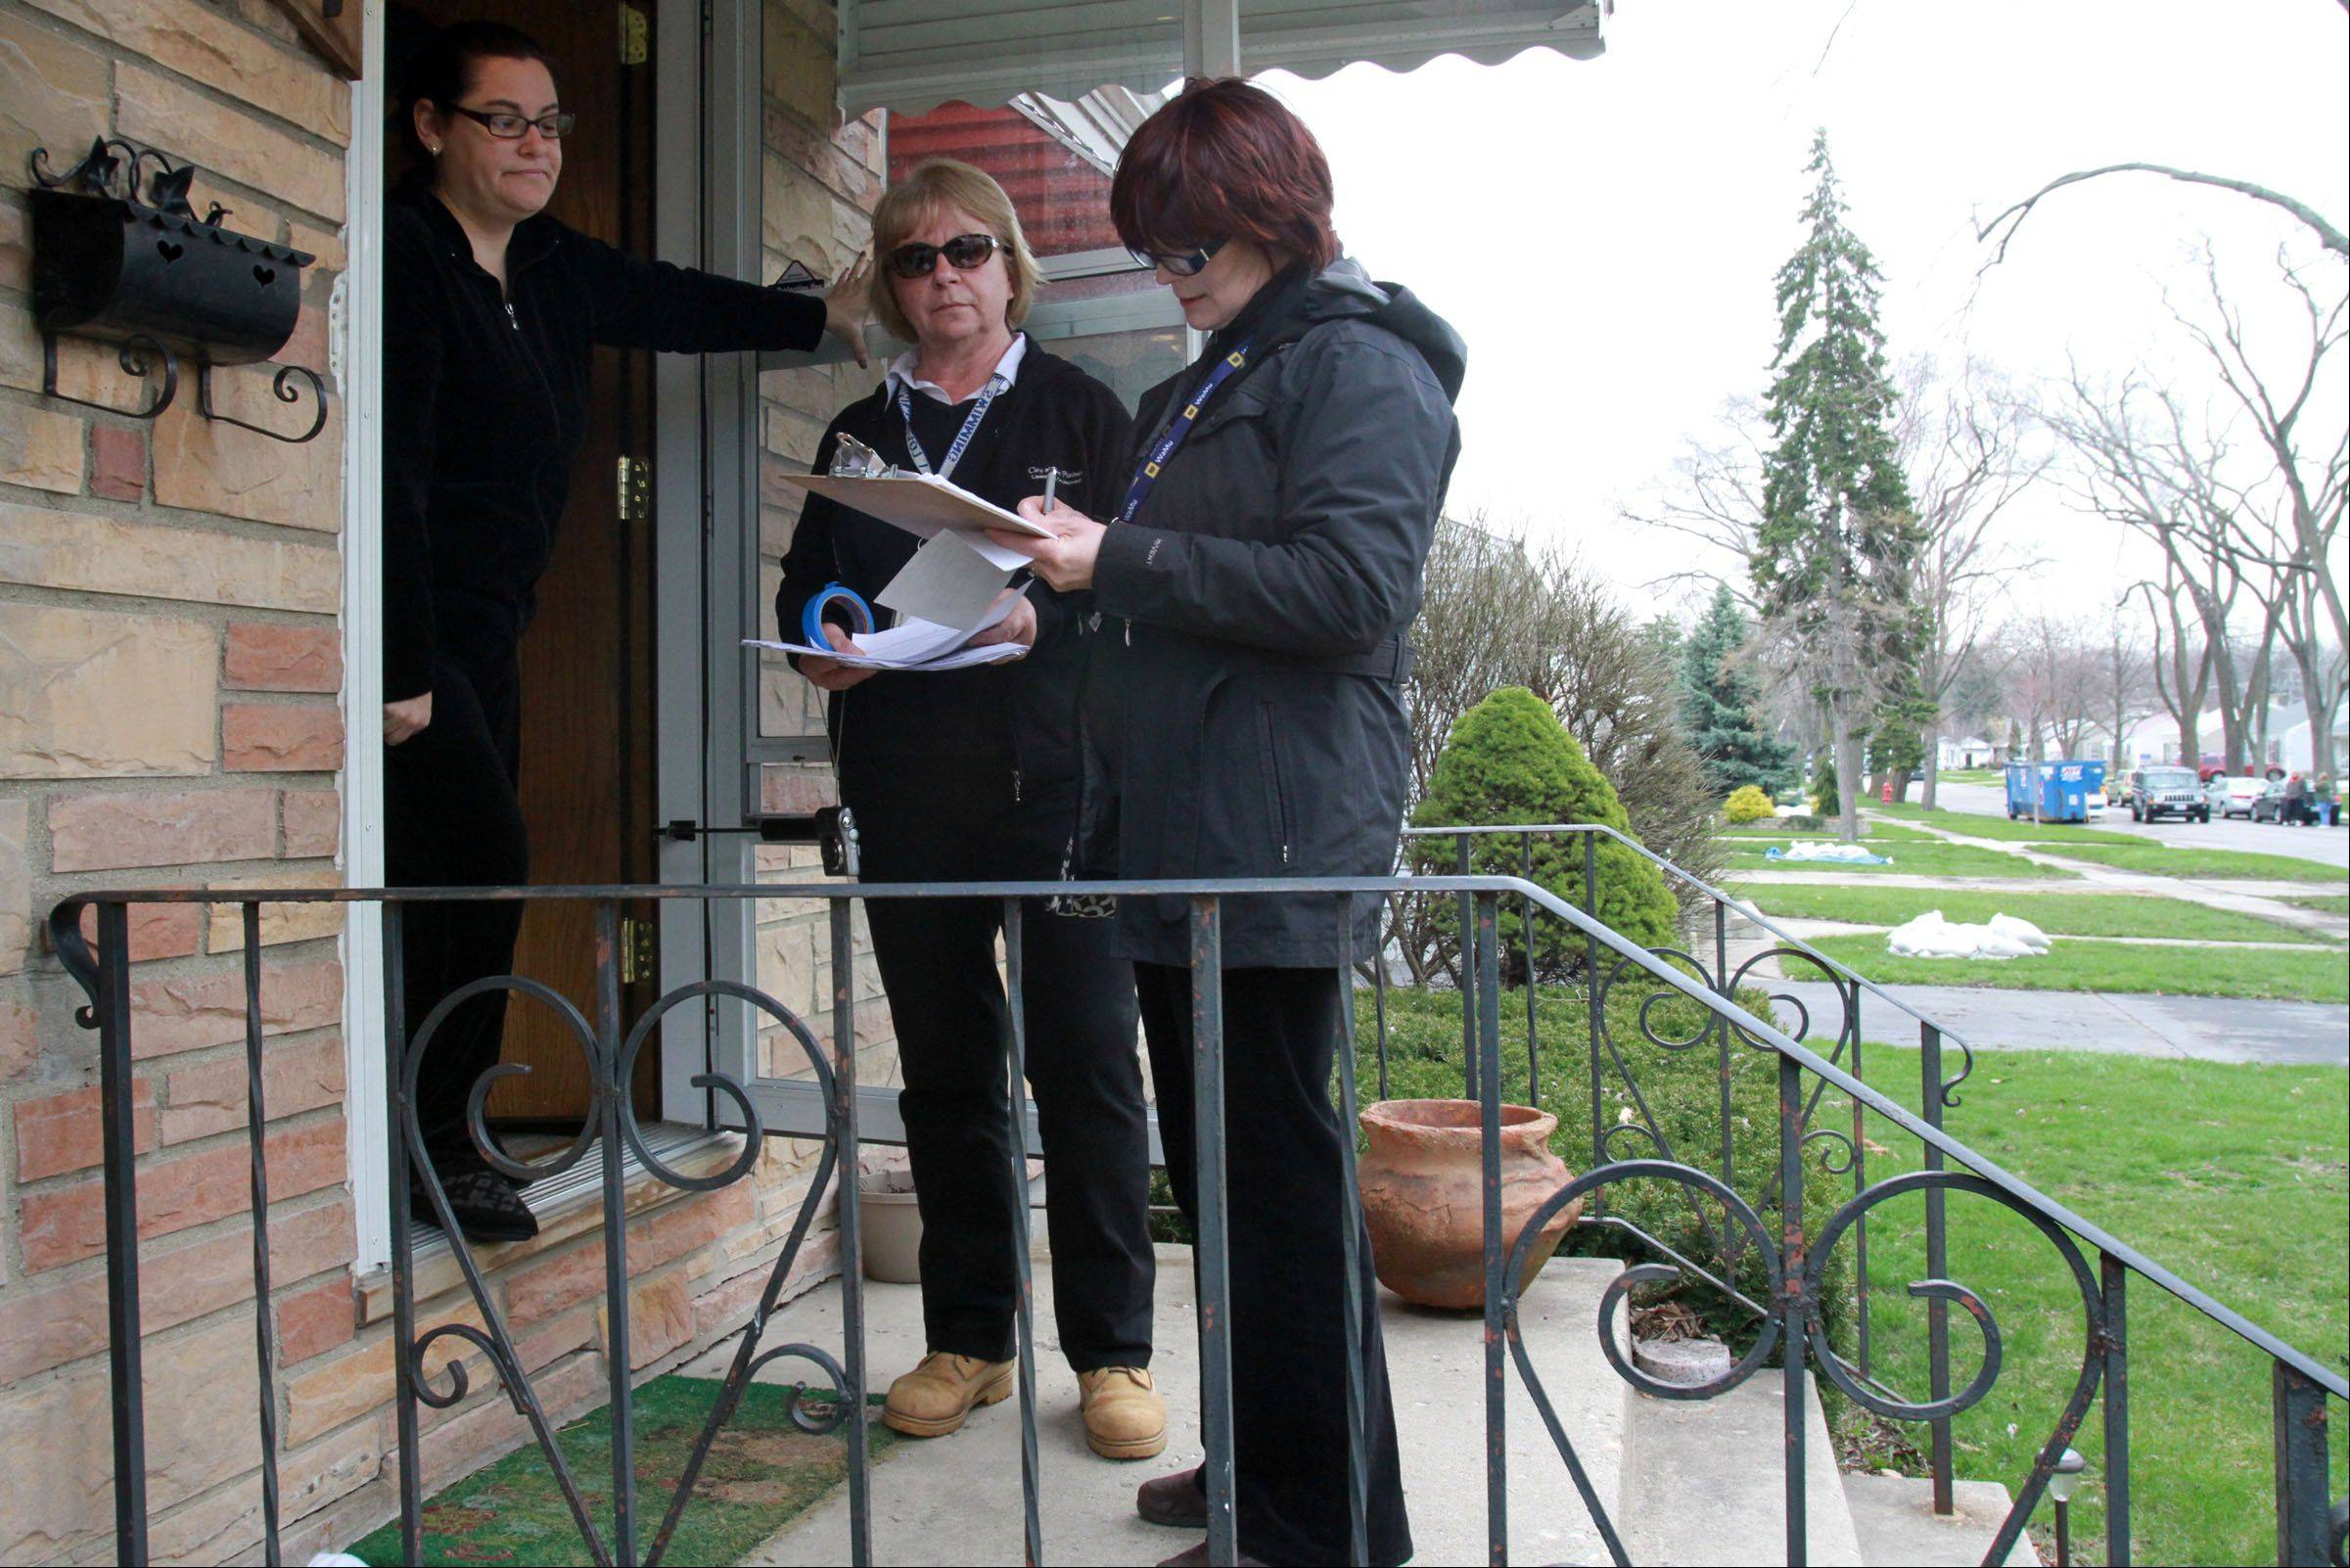 Des Plaines building inspectors Davorka Kirincic, right, and Pam Lunsmann ask Nicole Posen about flooding in her home and yard on Tuesday.